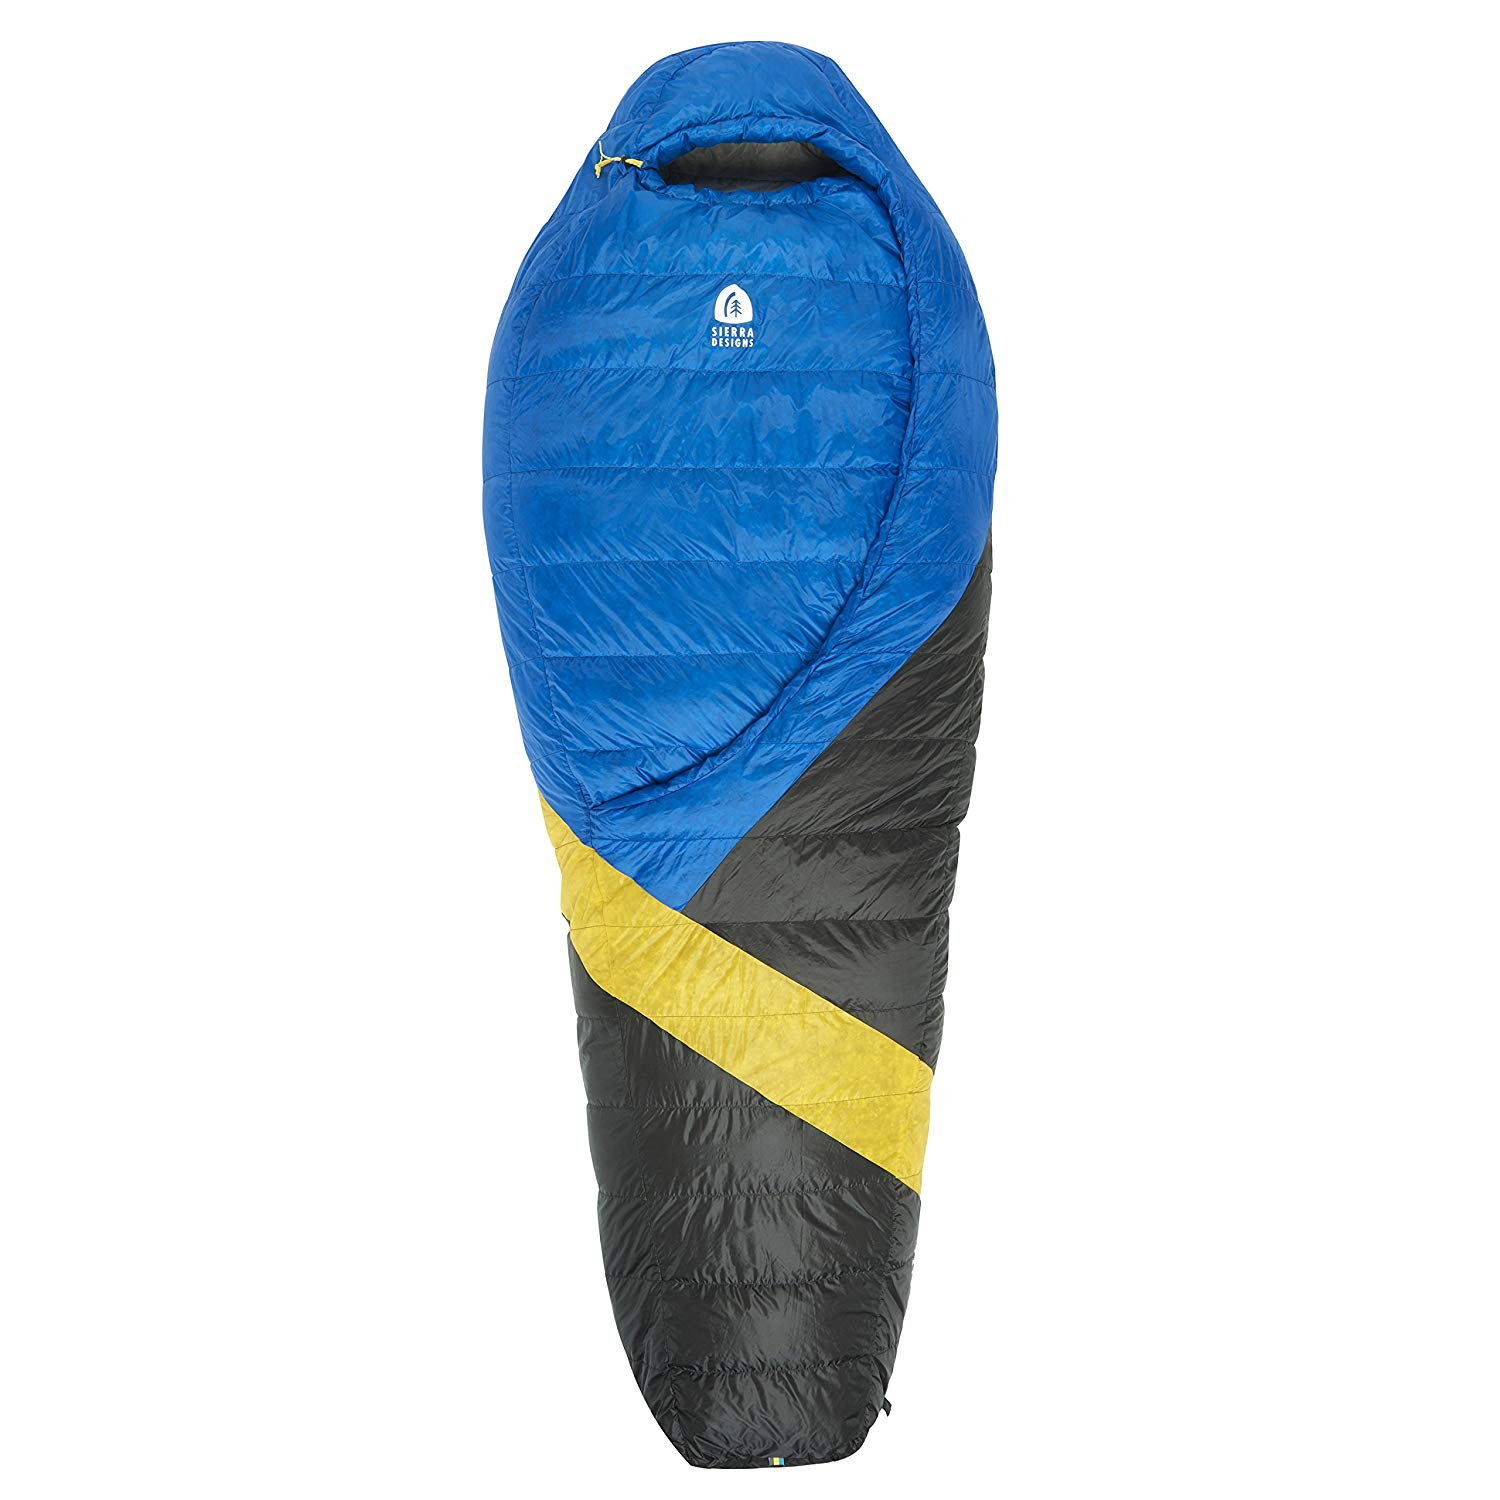 An image of Sierra Design Cloud 800 Men's 40 Degree Nylon Ripstop Sleeping Bag